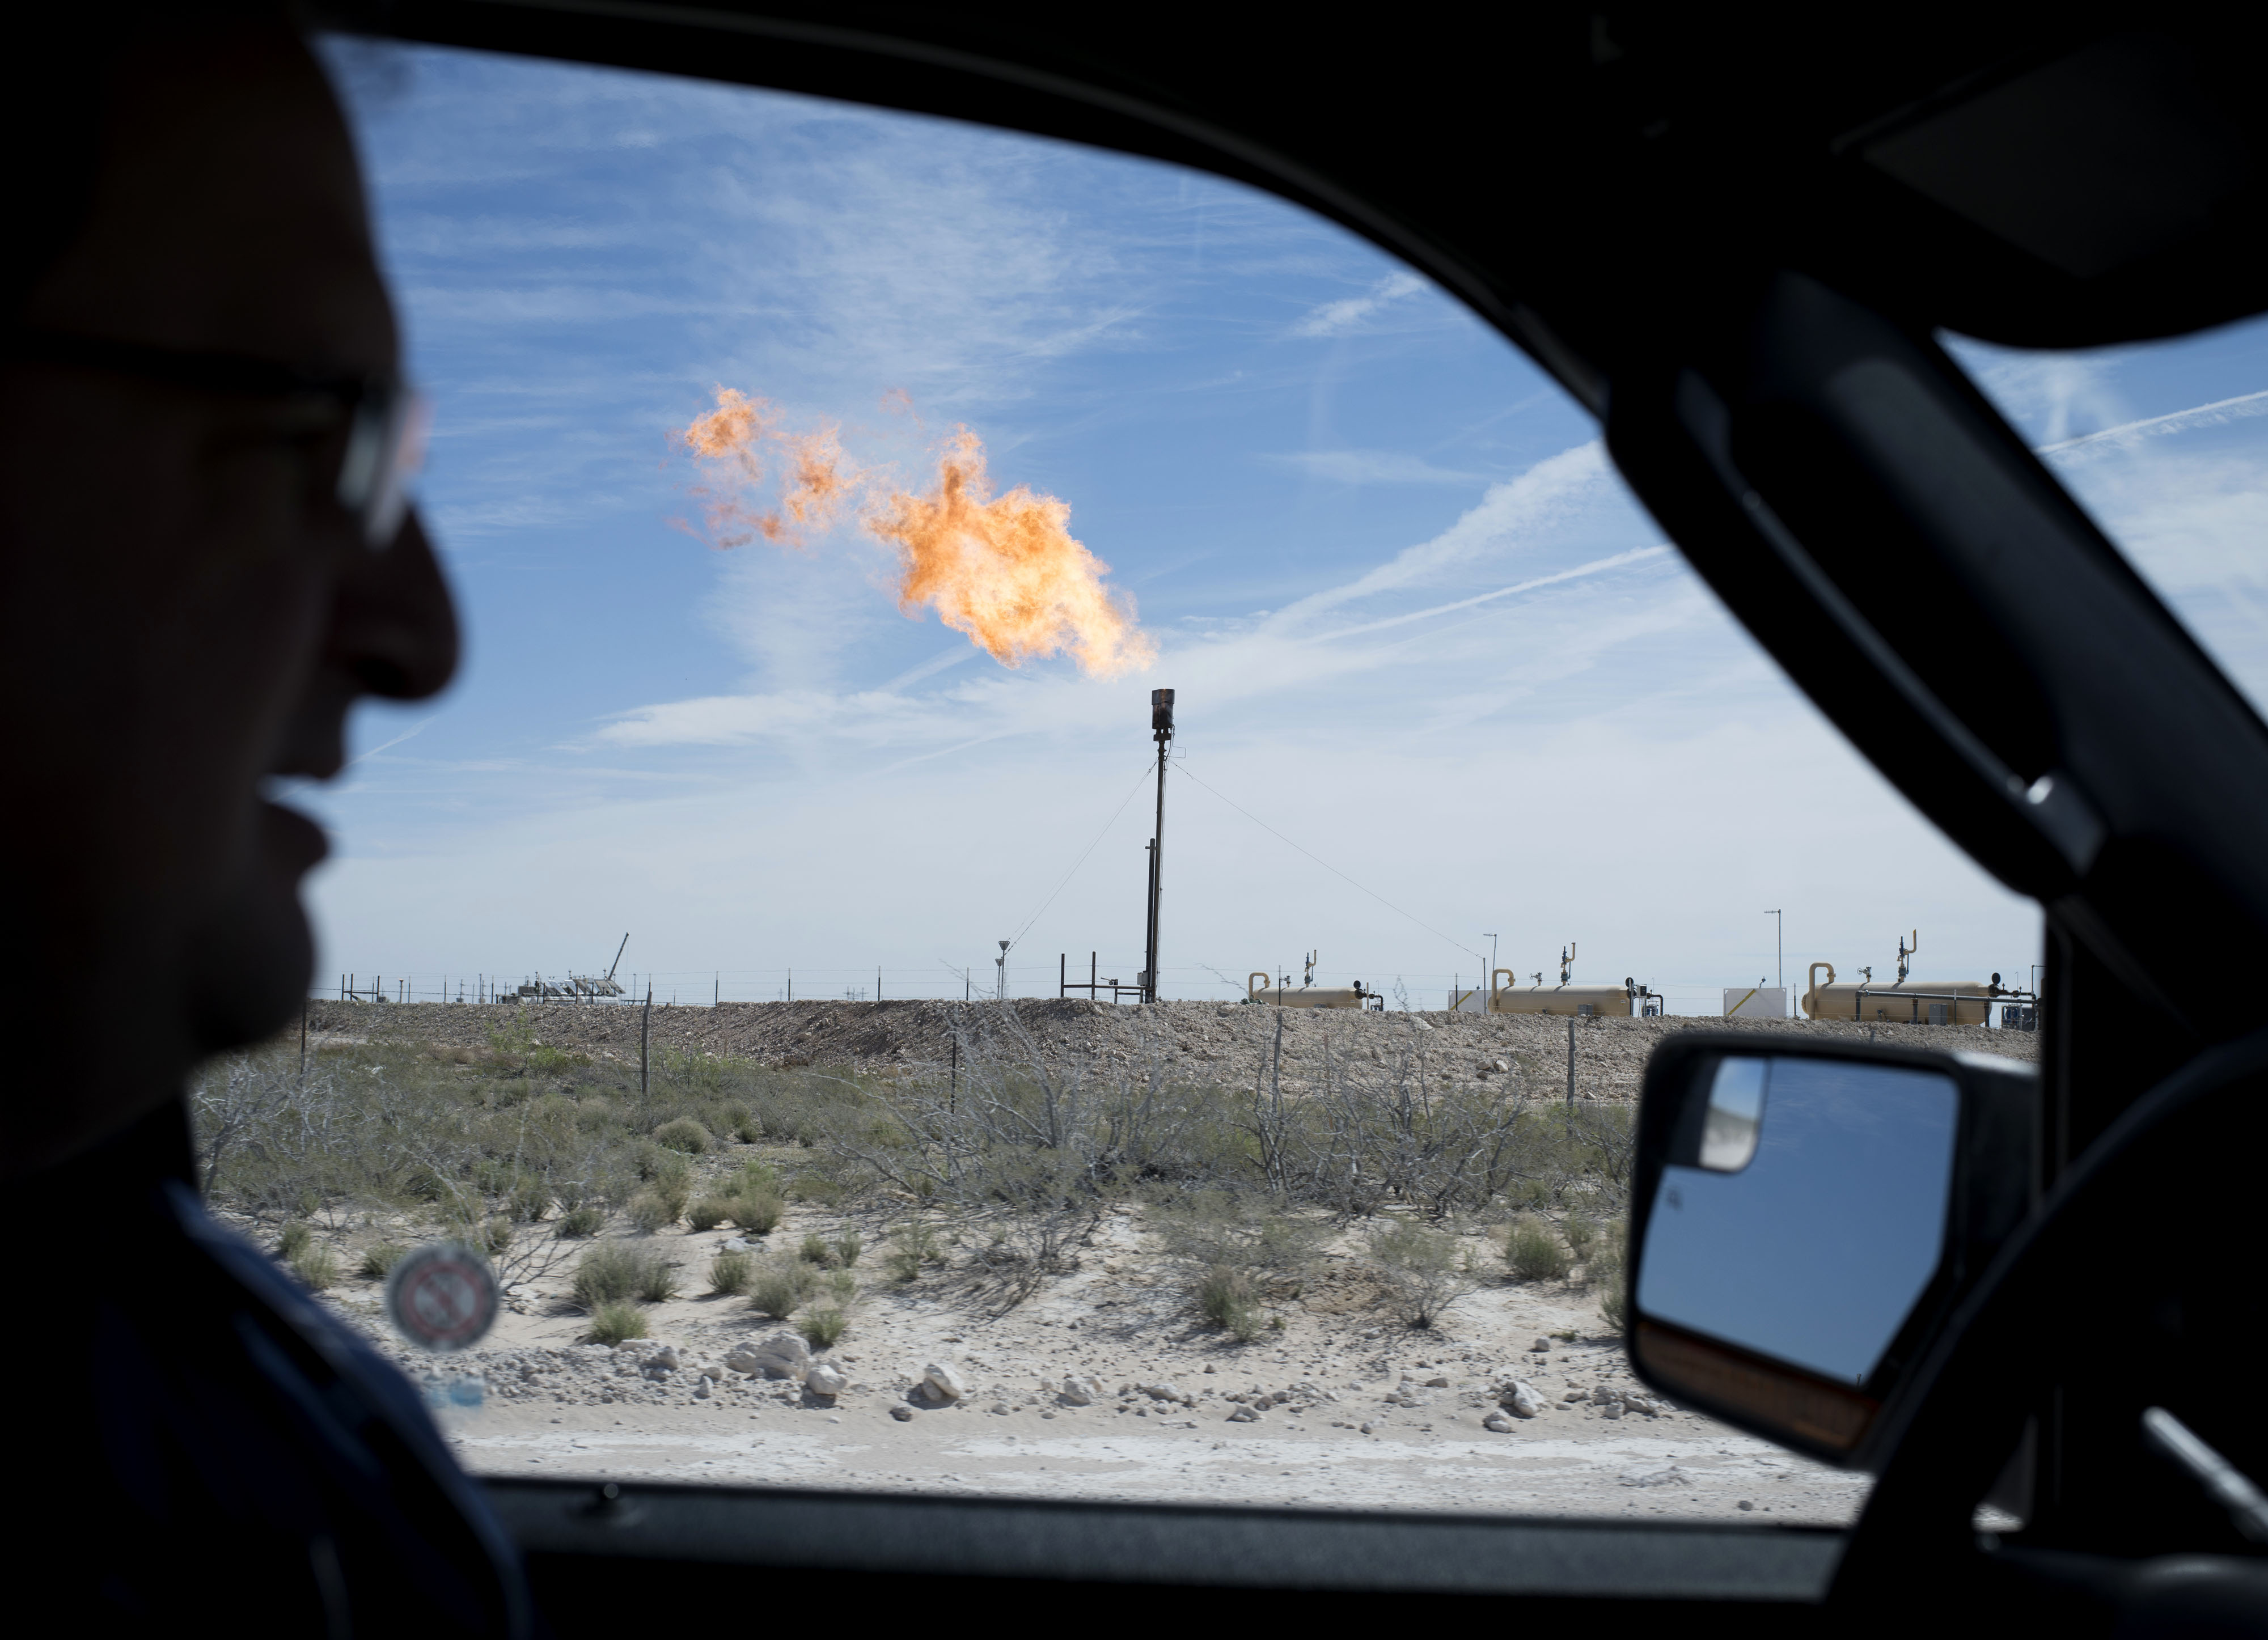 Big Oil's Plan To Buy Into The Shale Boom